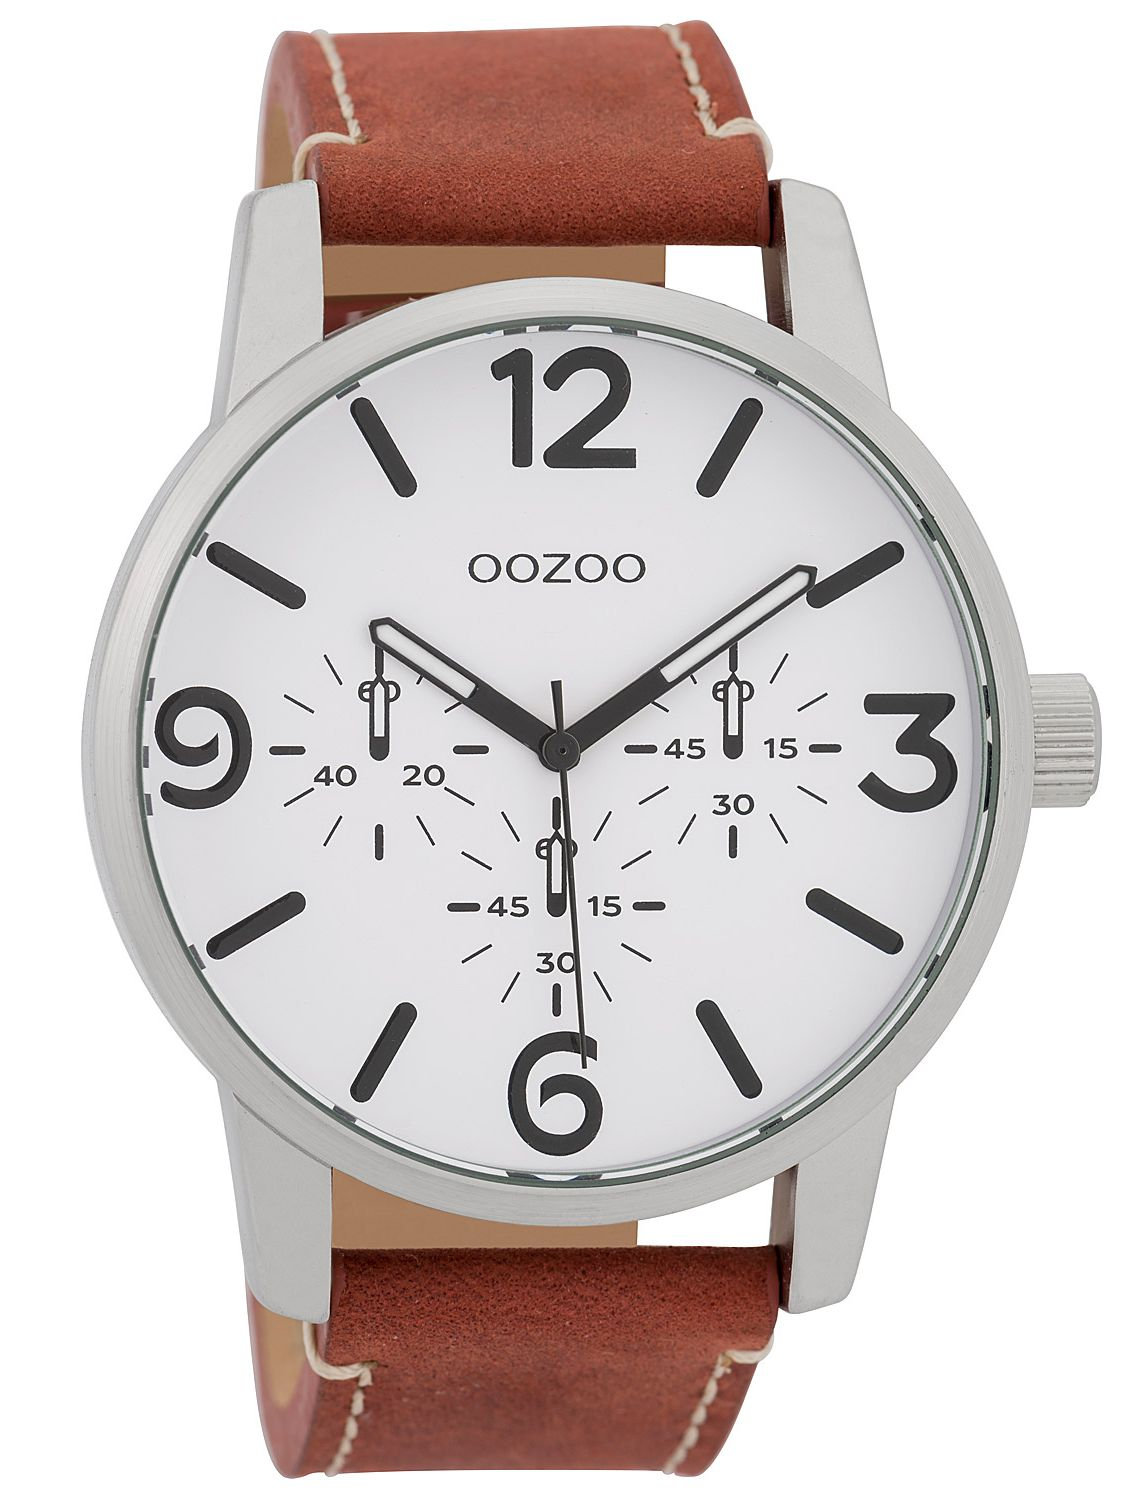 Oozoo Men s Watch with Leather Strap White Coral-Red 45 mm C9650 2941c70f59e